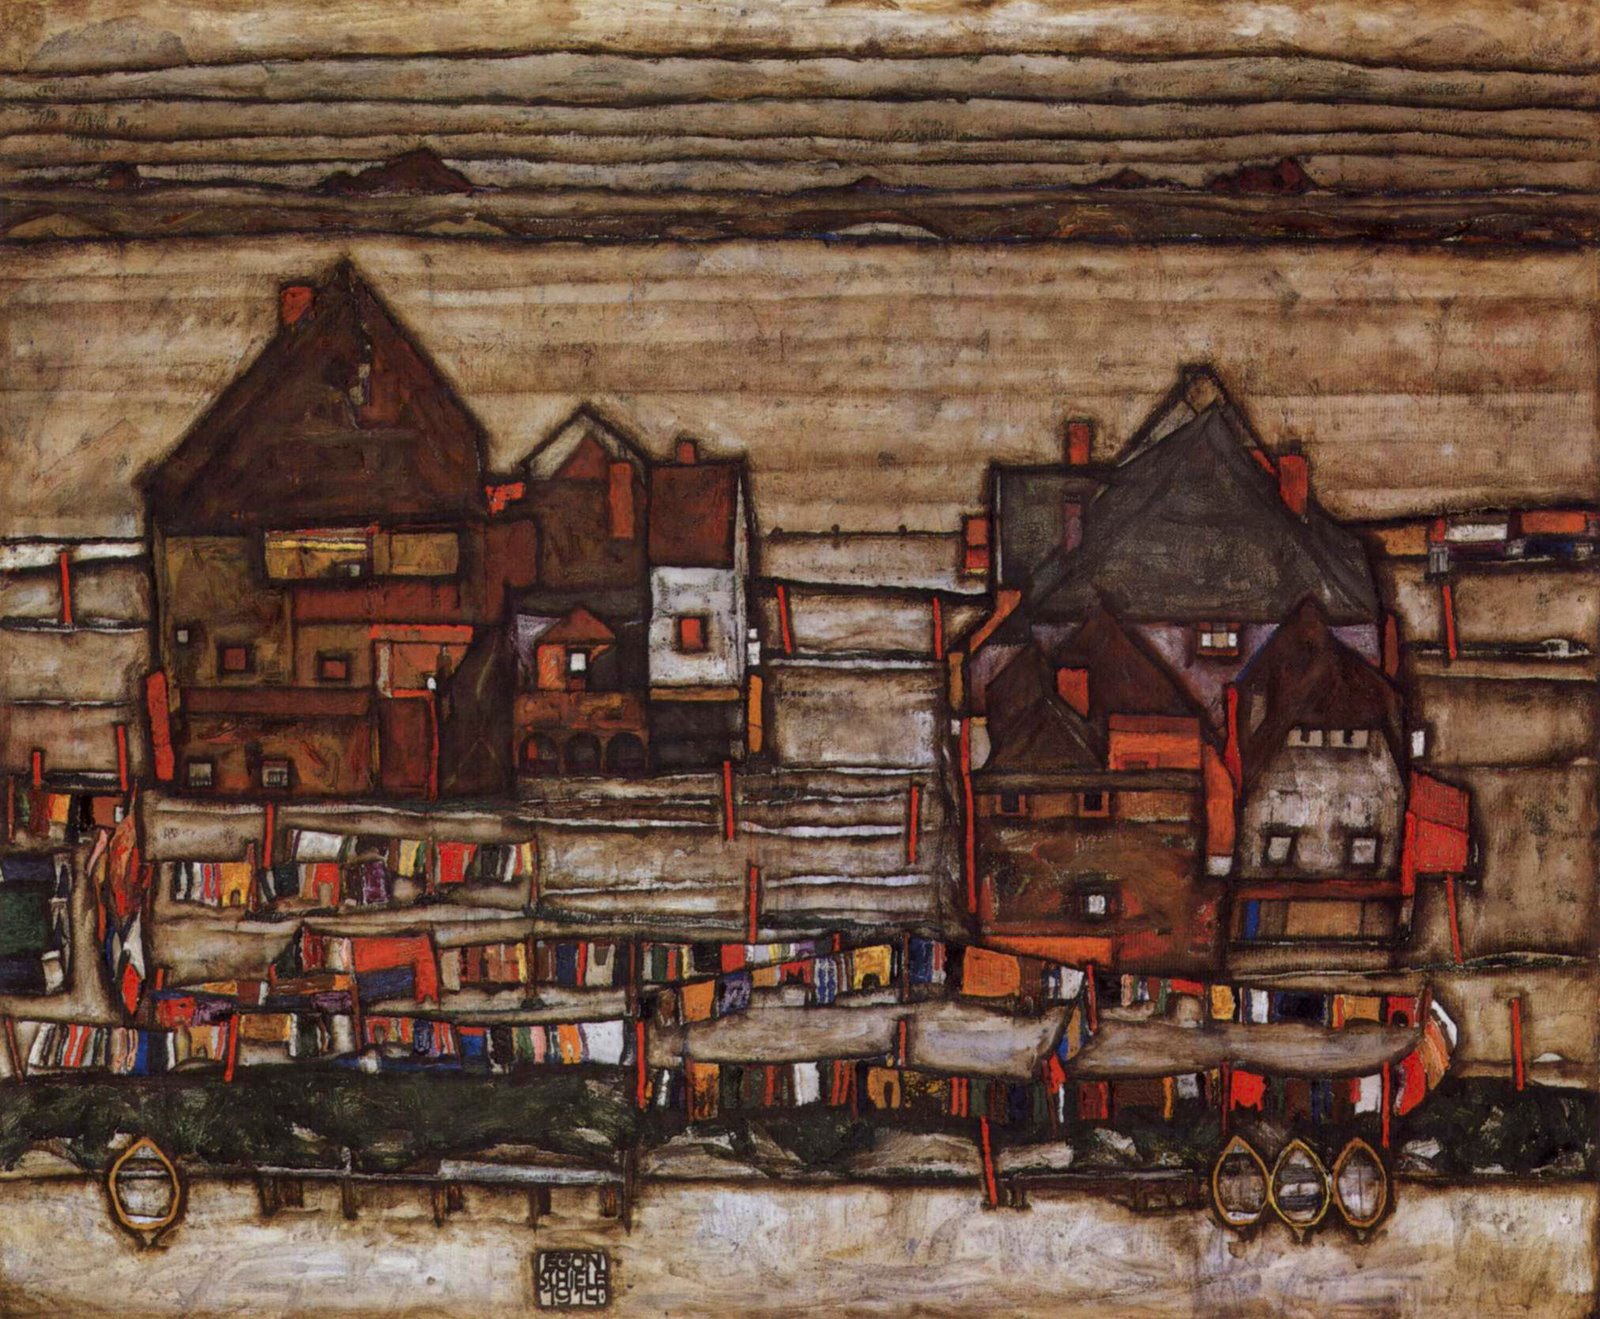 Egon Schiele's Houses with Colorful Laundry Sells for Record $40.1 Million